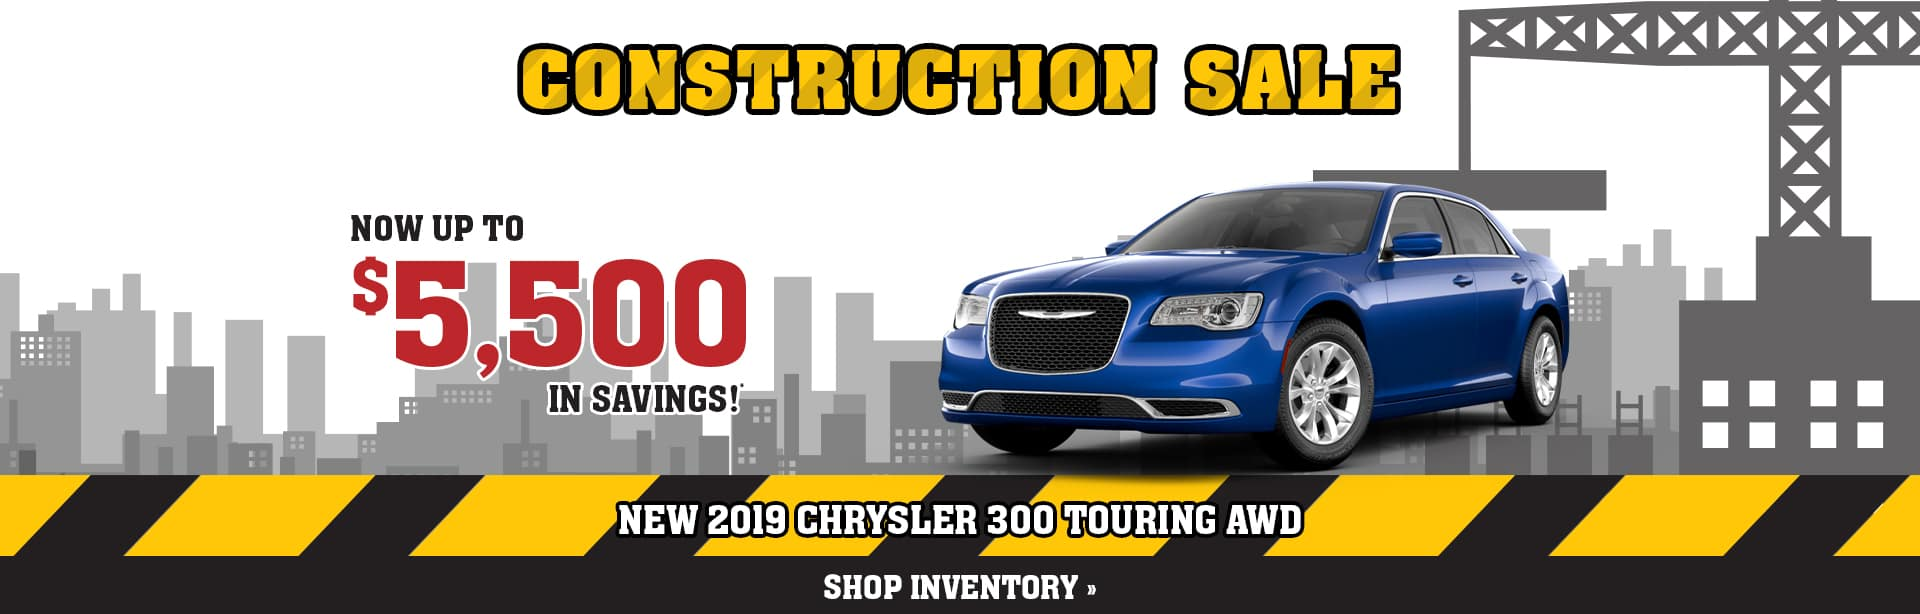 Save up to $5,500 on a new Chrysler 300 near Terre Haute, Indiana